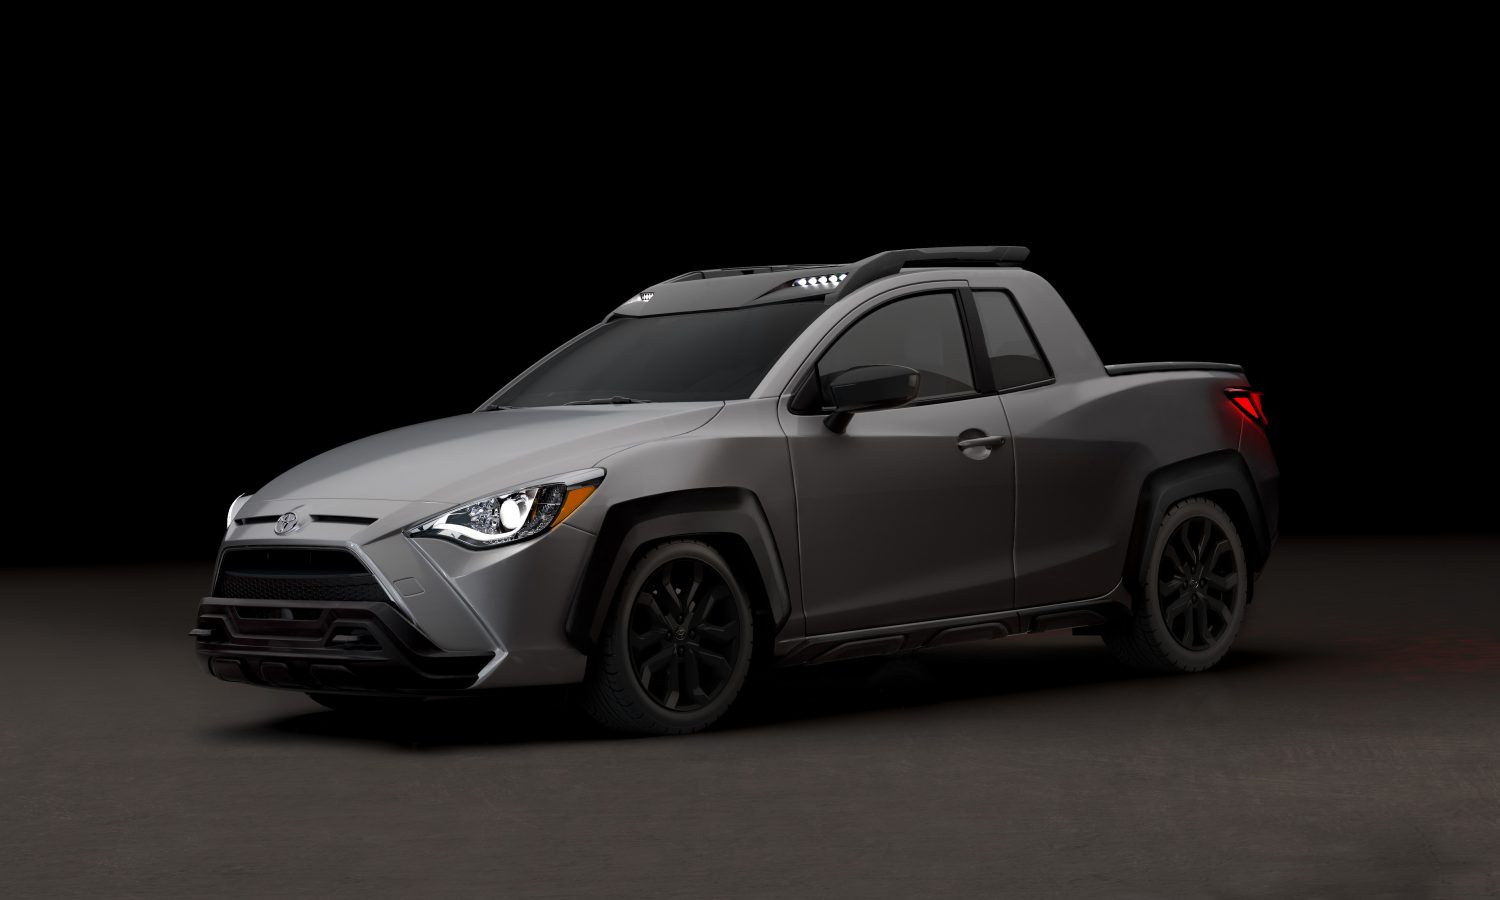 89 All New Toyota Yaris 2020 Concept Release Date